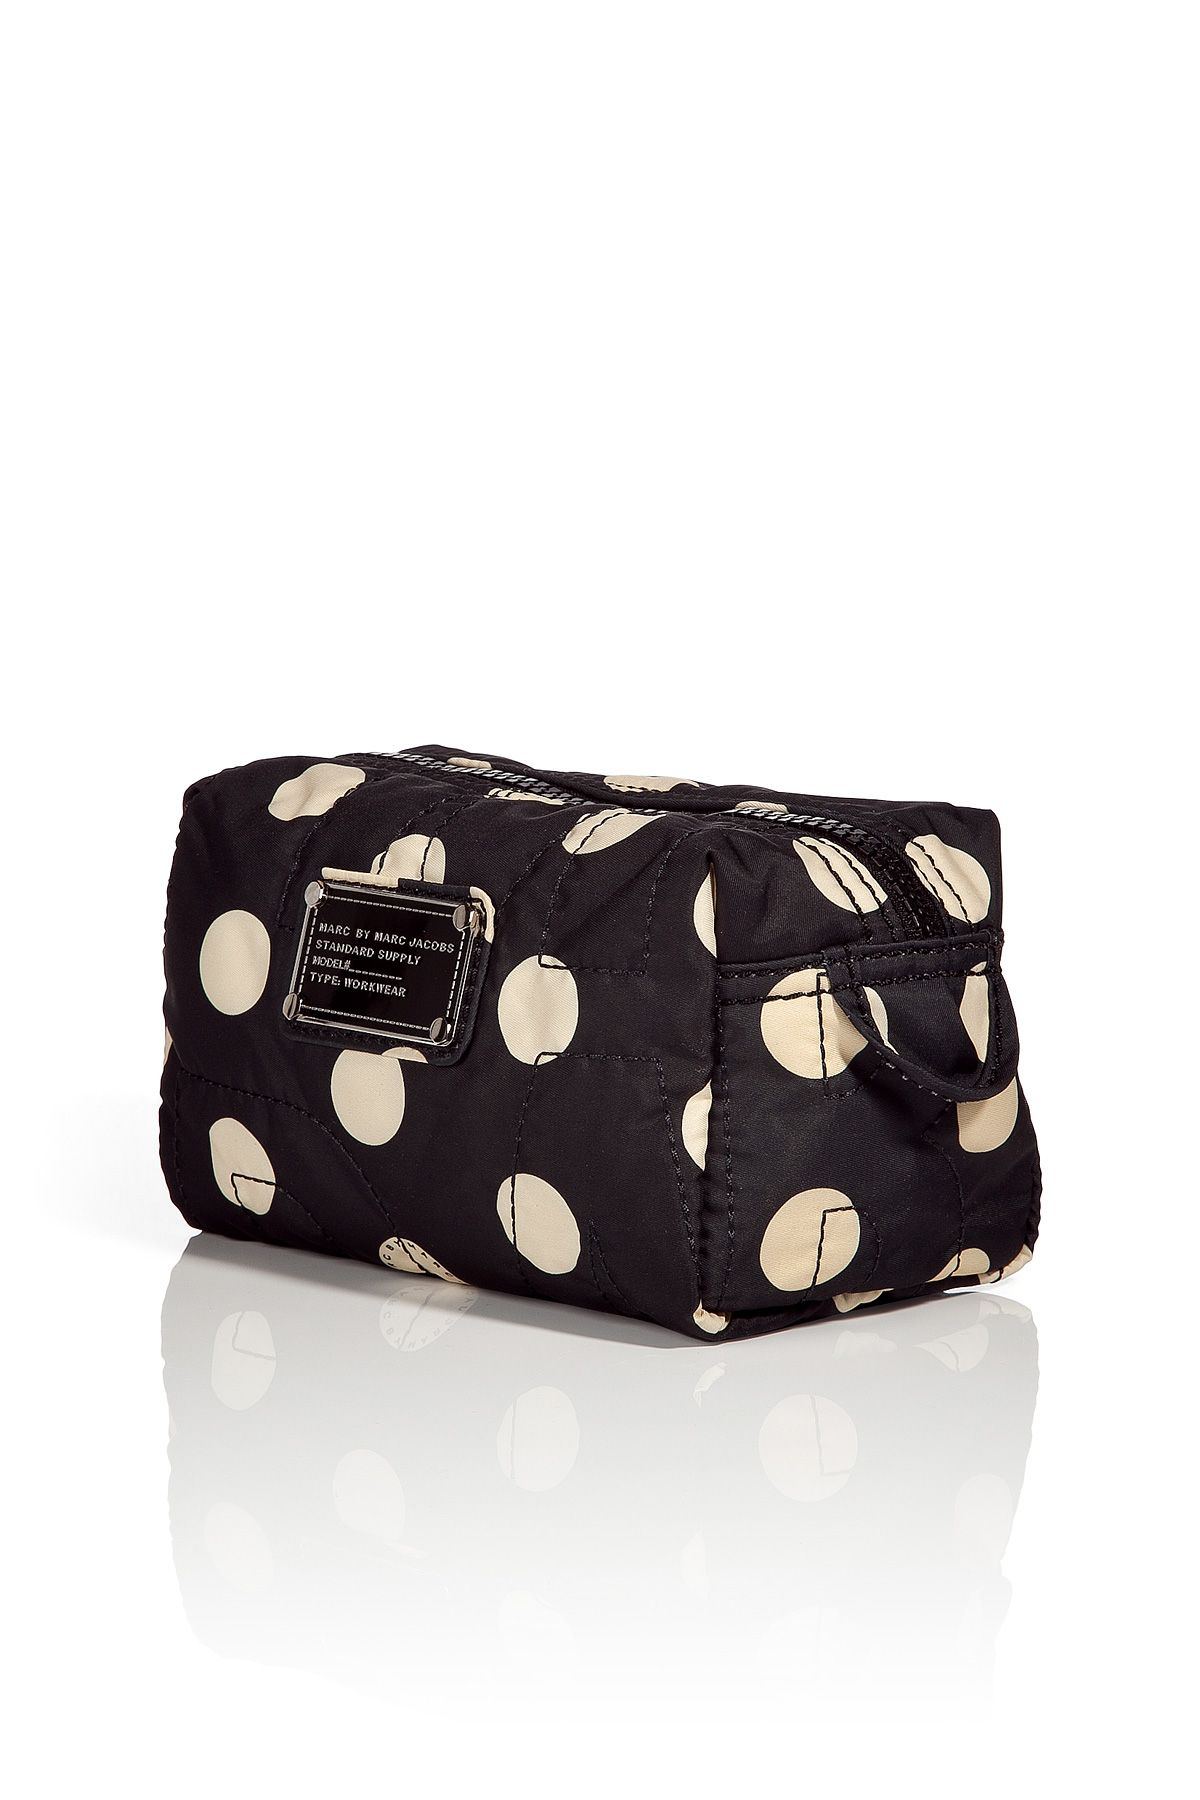 marc jacobs cosmetic bag / polka dots and Marc my